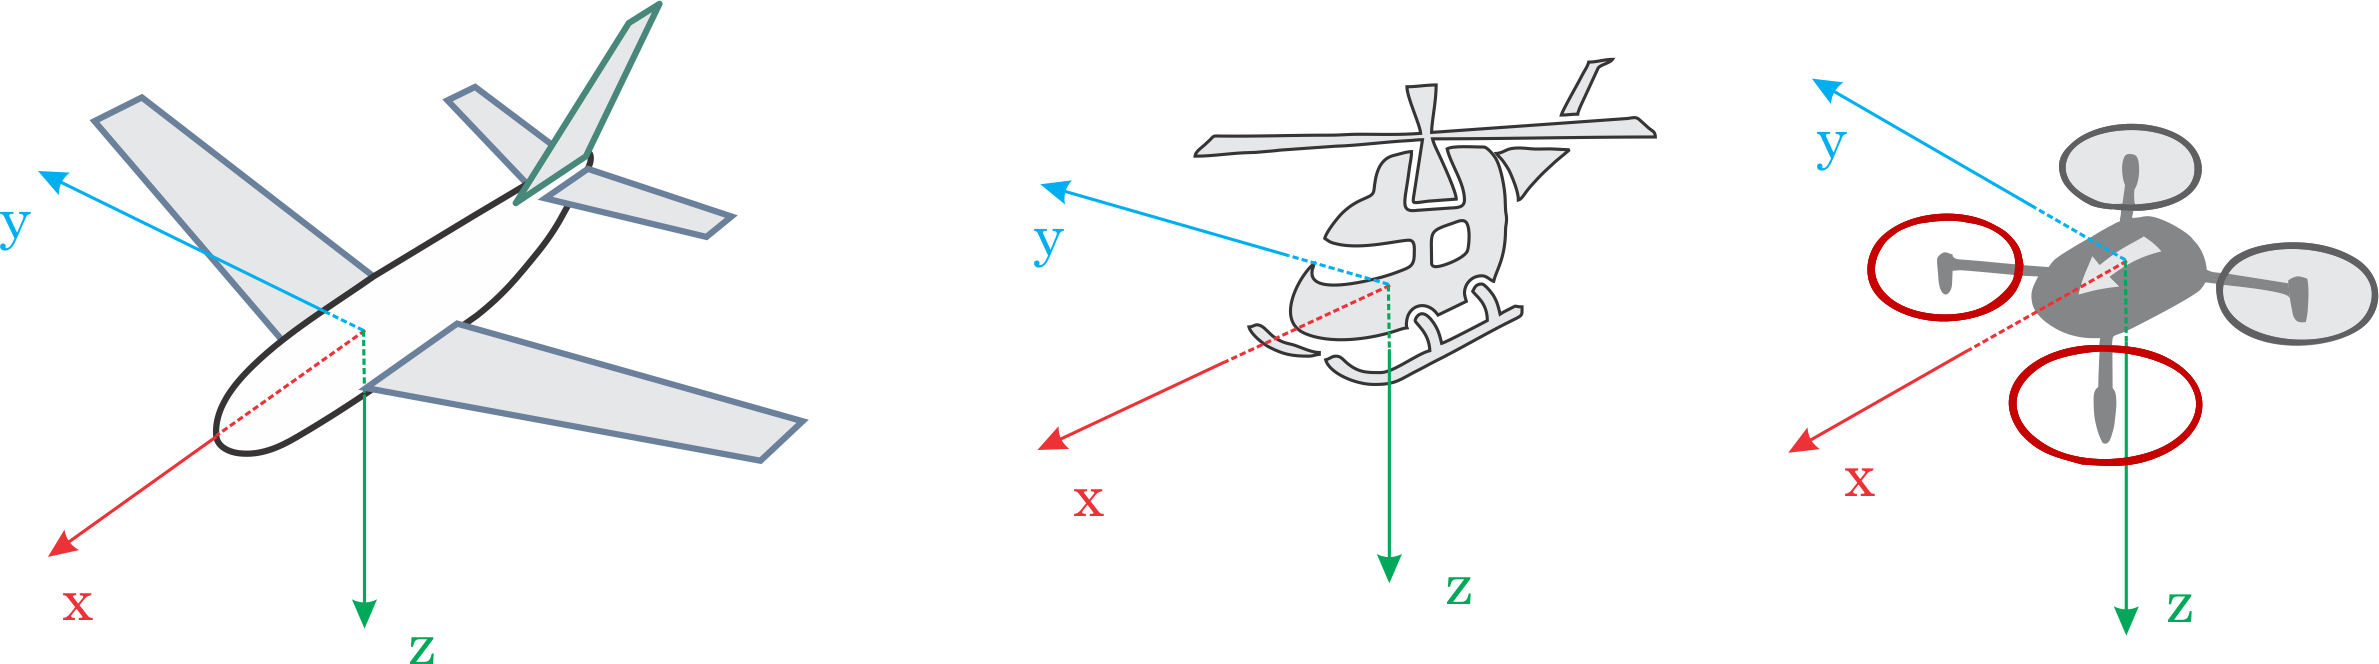 Basic Concepts Ham Px4userguide Vector Osd Wiring Diagram It Is Important To Know The Vehicle Heading Direction In Order Align Autopilot With Of Movement Multicopters Have A Even